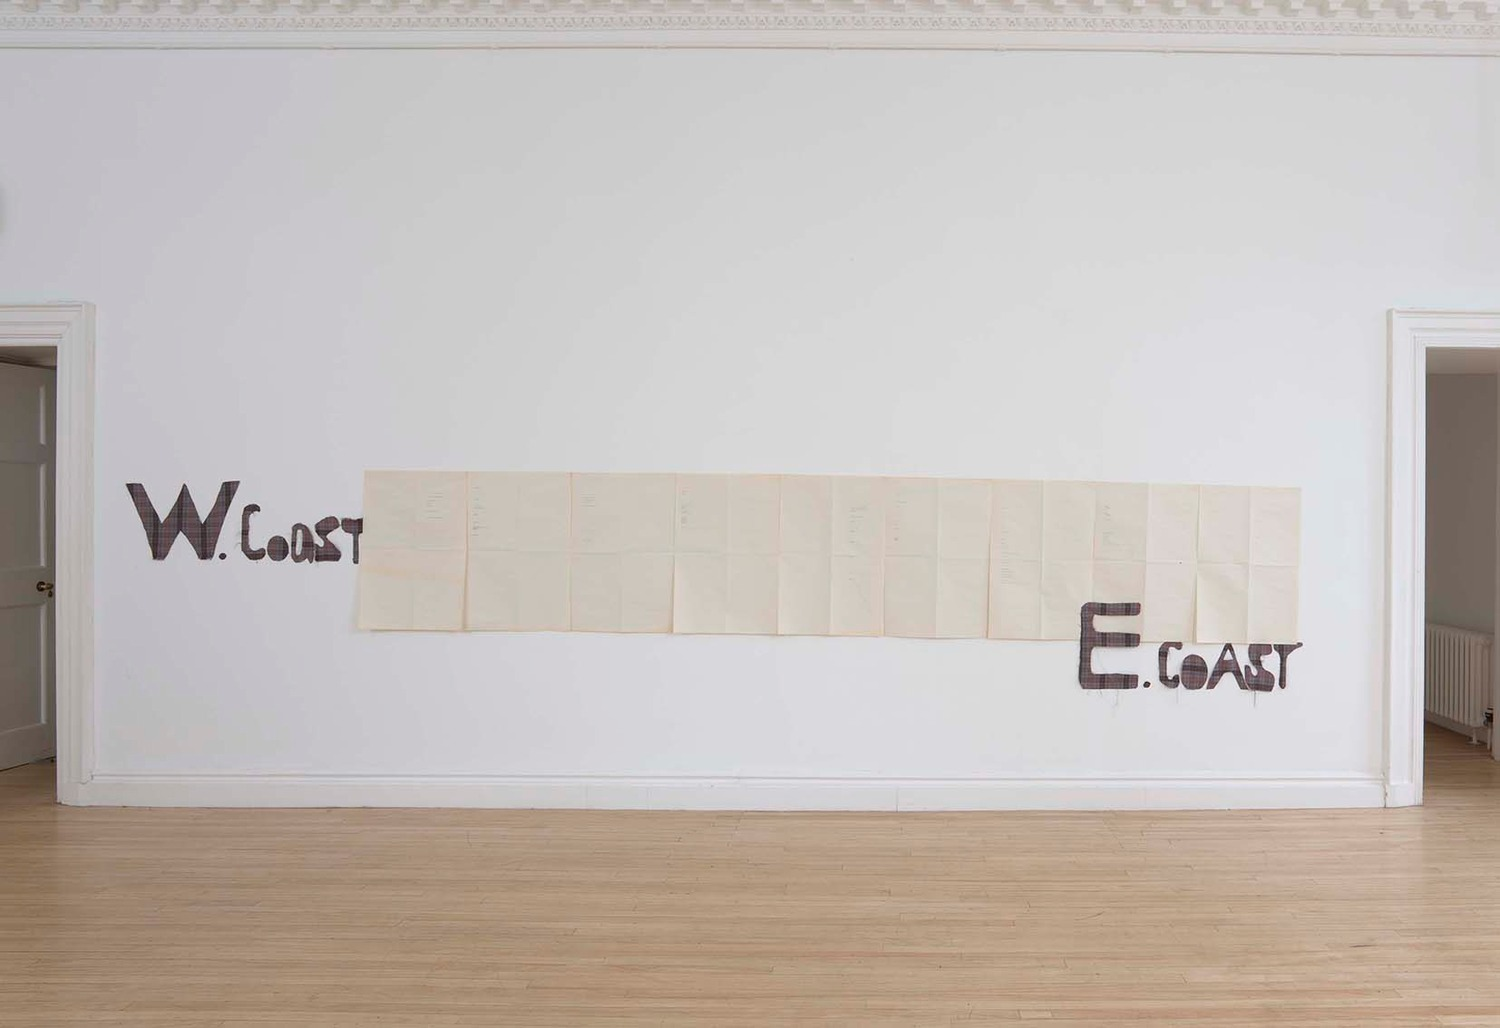 Sue Tompkins, Untitled, 2011, Typewritten text on newsprint, fabric, Dimensions variable, Installation view, Inverleith House, Edinburgh, 2011